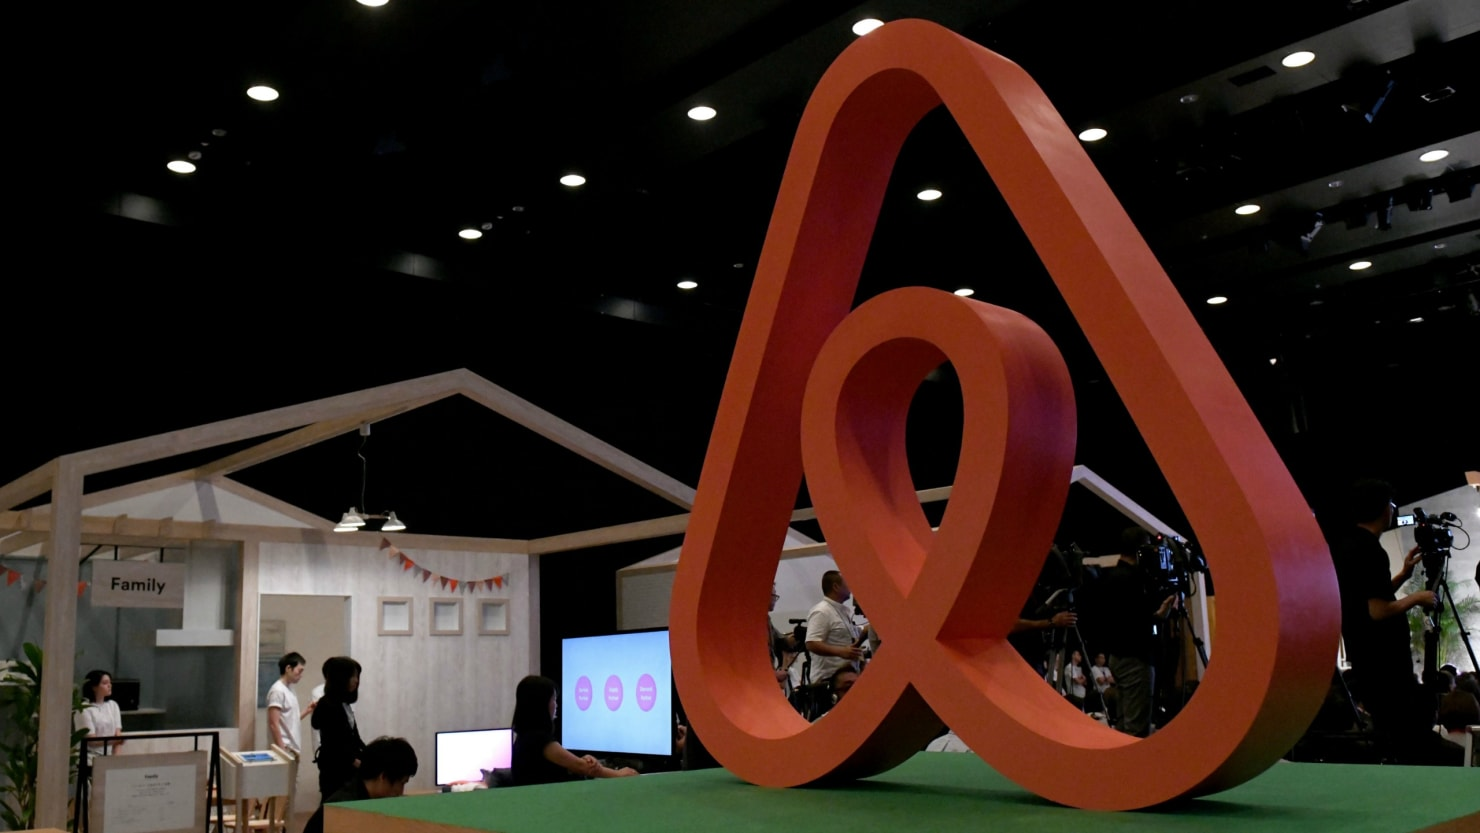 Airbnb, eBay to End Mandated Arbitration Policies for Sexual Harassment Cases